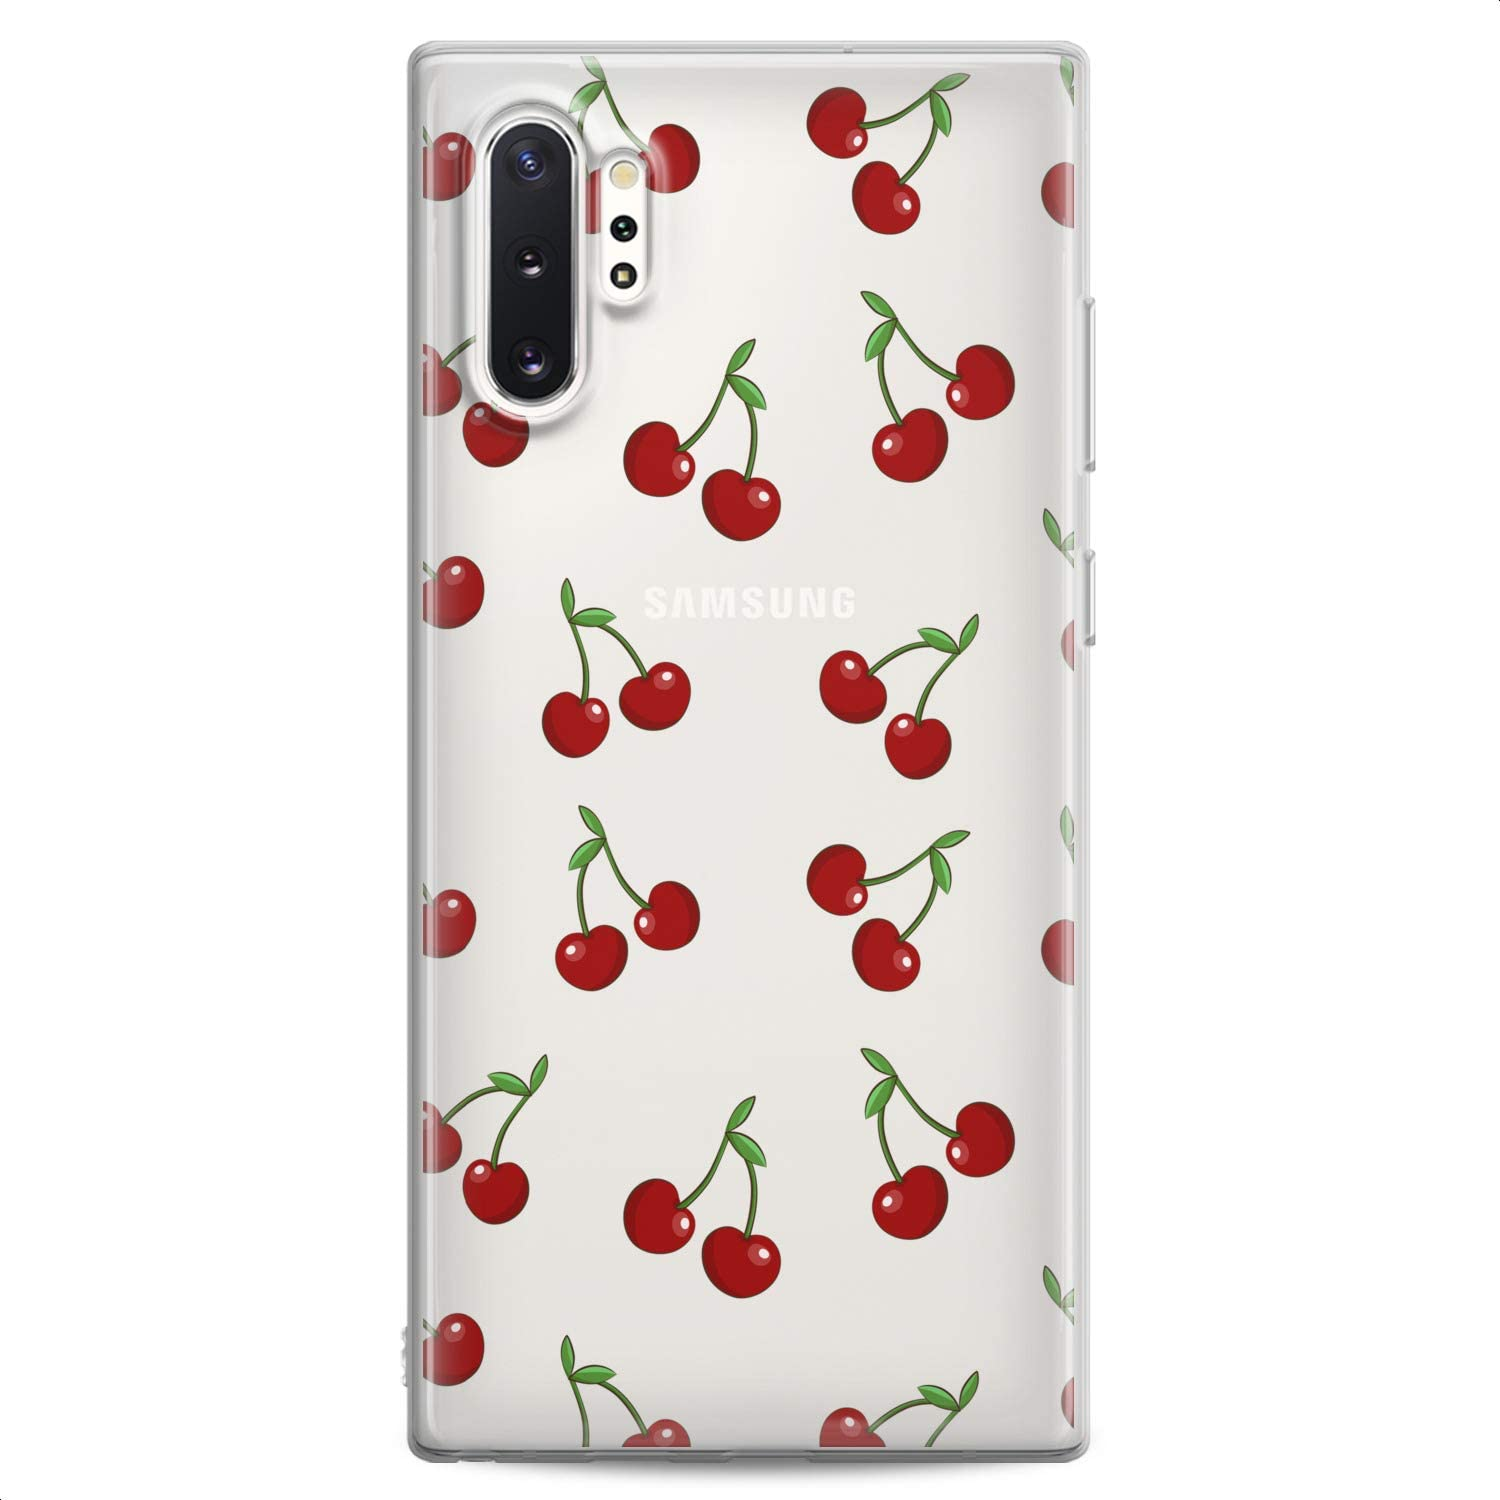 Cavka TPU Case Replacement for Samsung S21 Ultra S20 Plus S10 Lite Note 20 5G S10e S9 Cherry Soft Red Lovely Tropic Food Fruit Clear Summer Print Design Flexible Silicone Slim fit Cute Cute Luxury